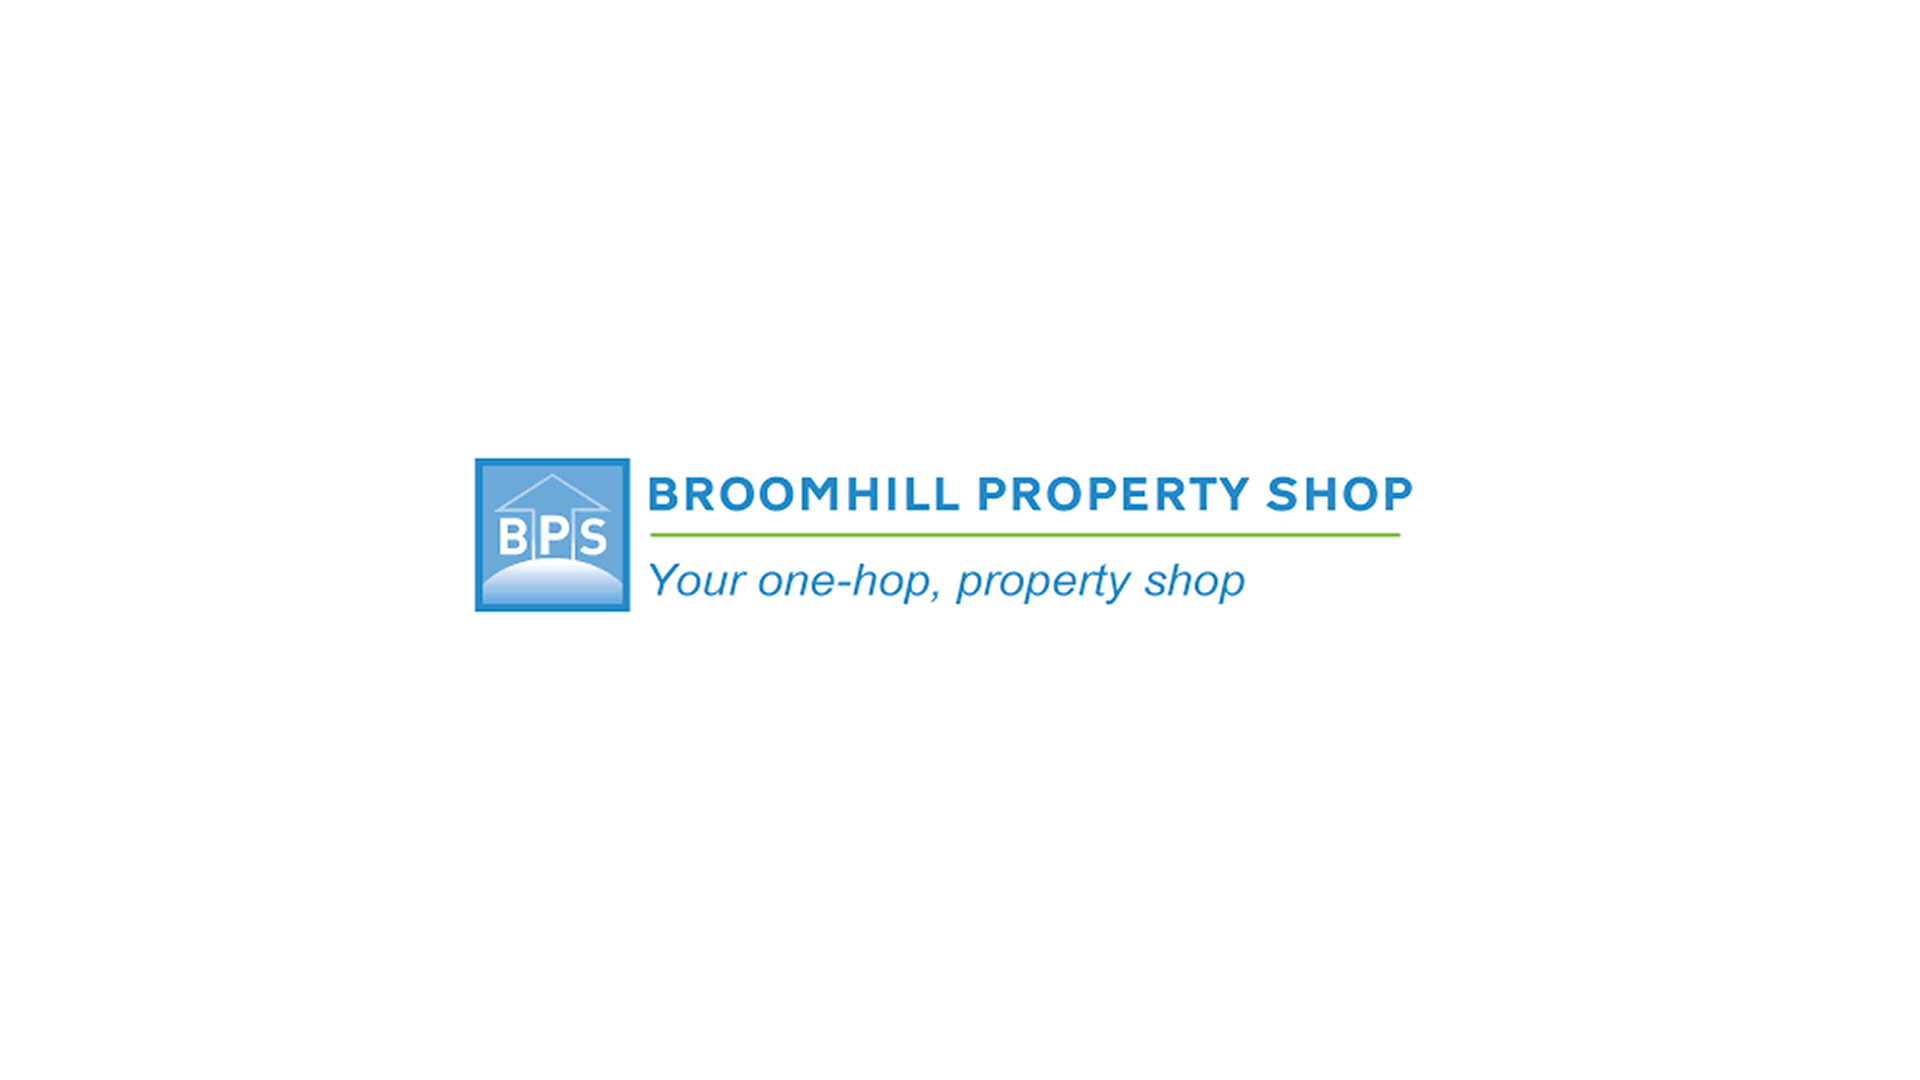 broomhill property shop